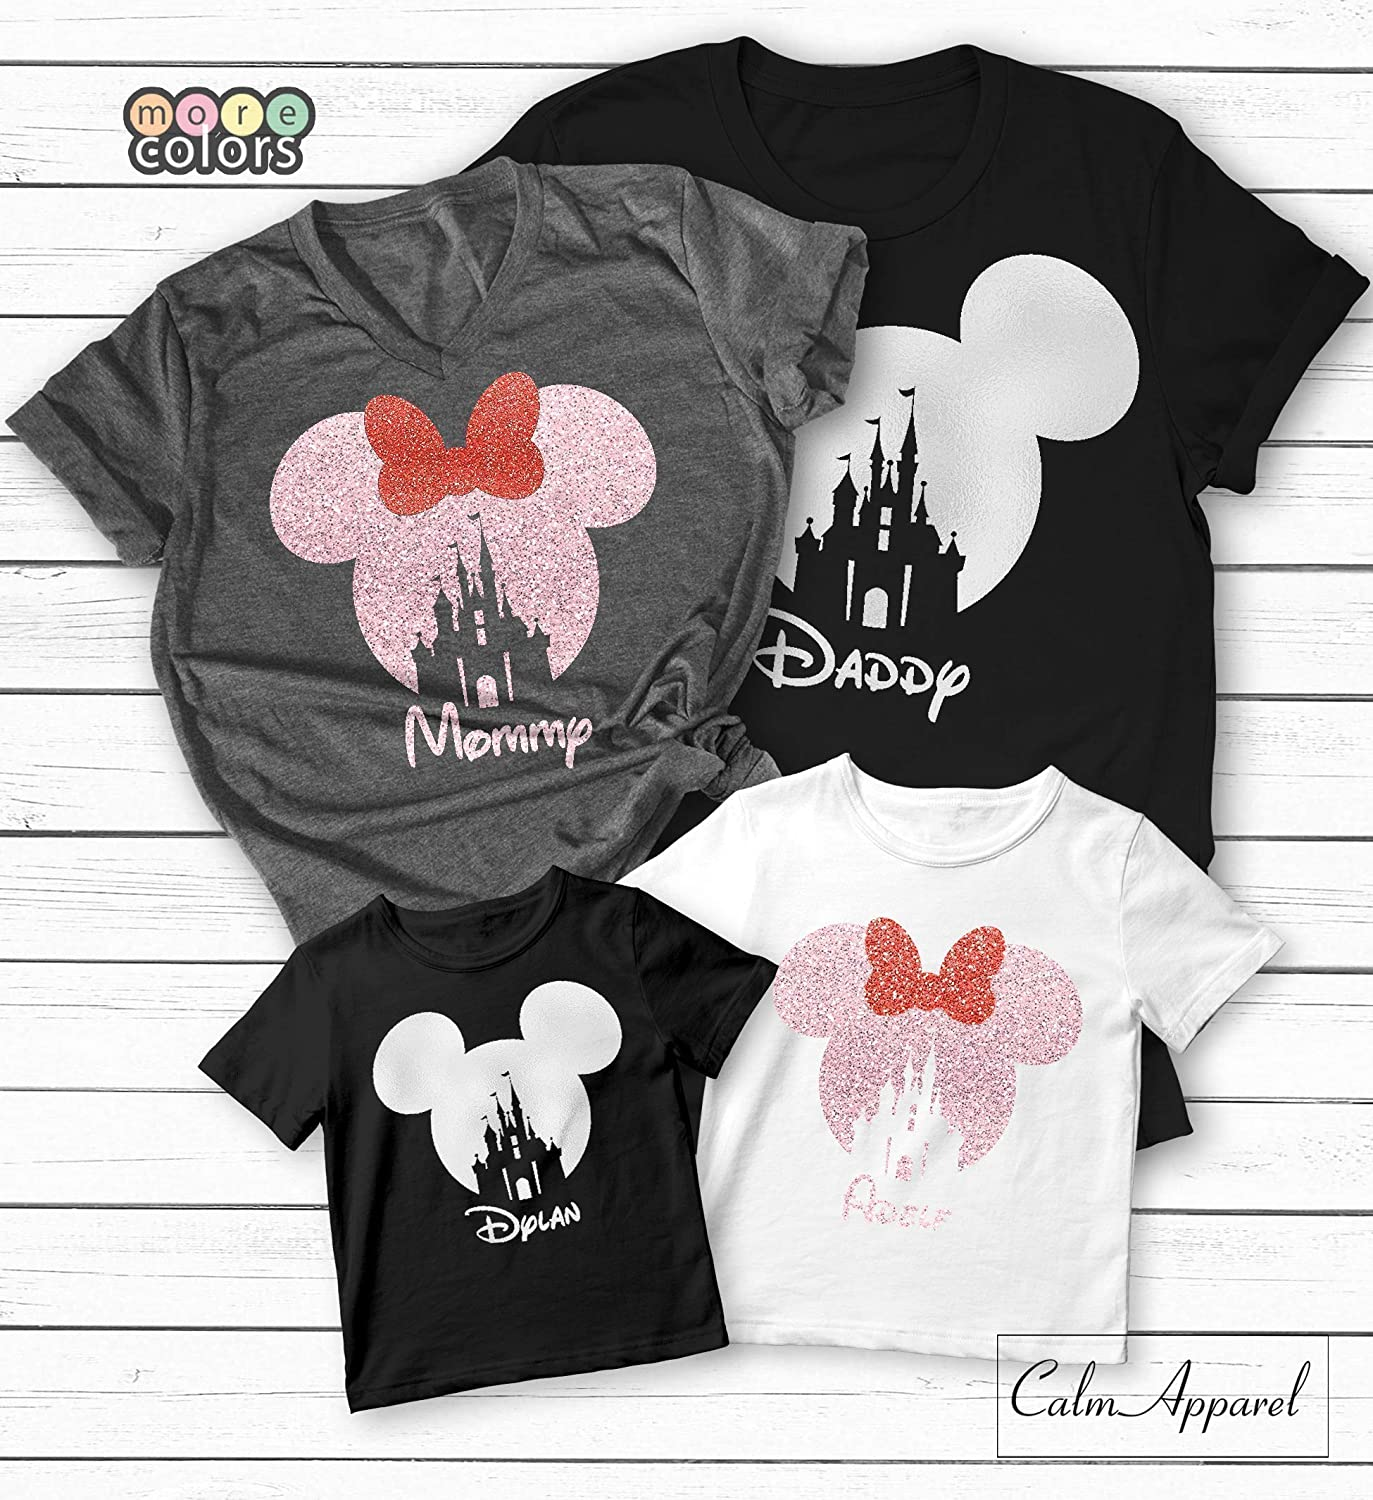 Matching Christmas Shirts For Family.Disney Christmas Shirt Custom Disney Shirts Custom T Shirt Family Disney T Shirt Family Shirt Matching Family Disney Shirt